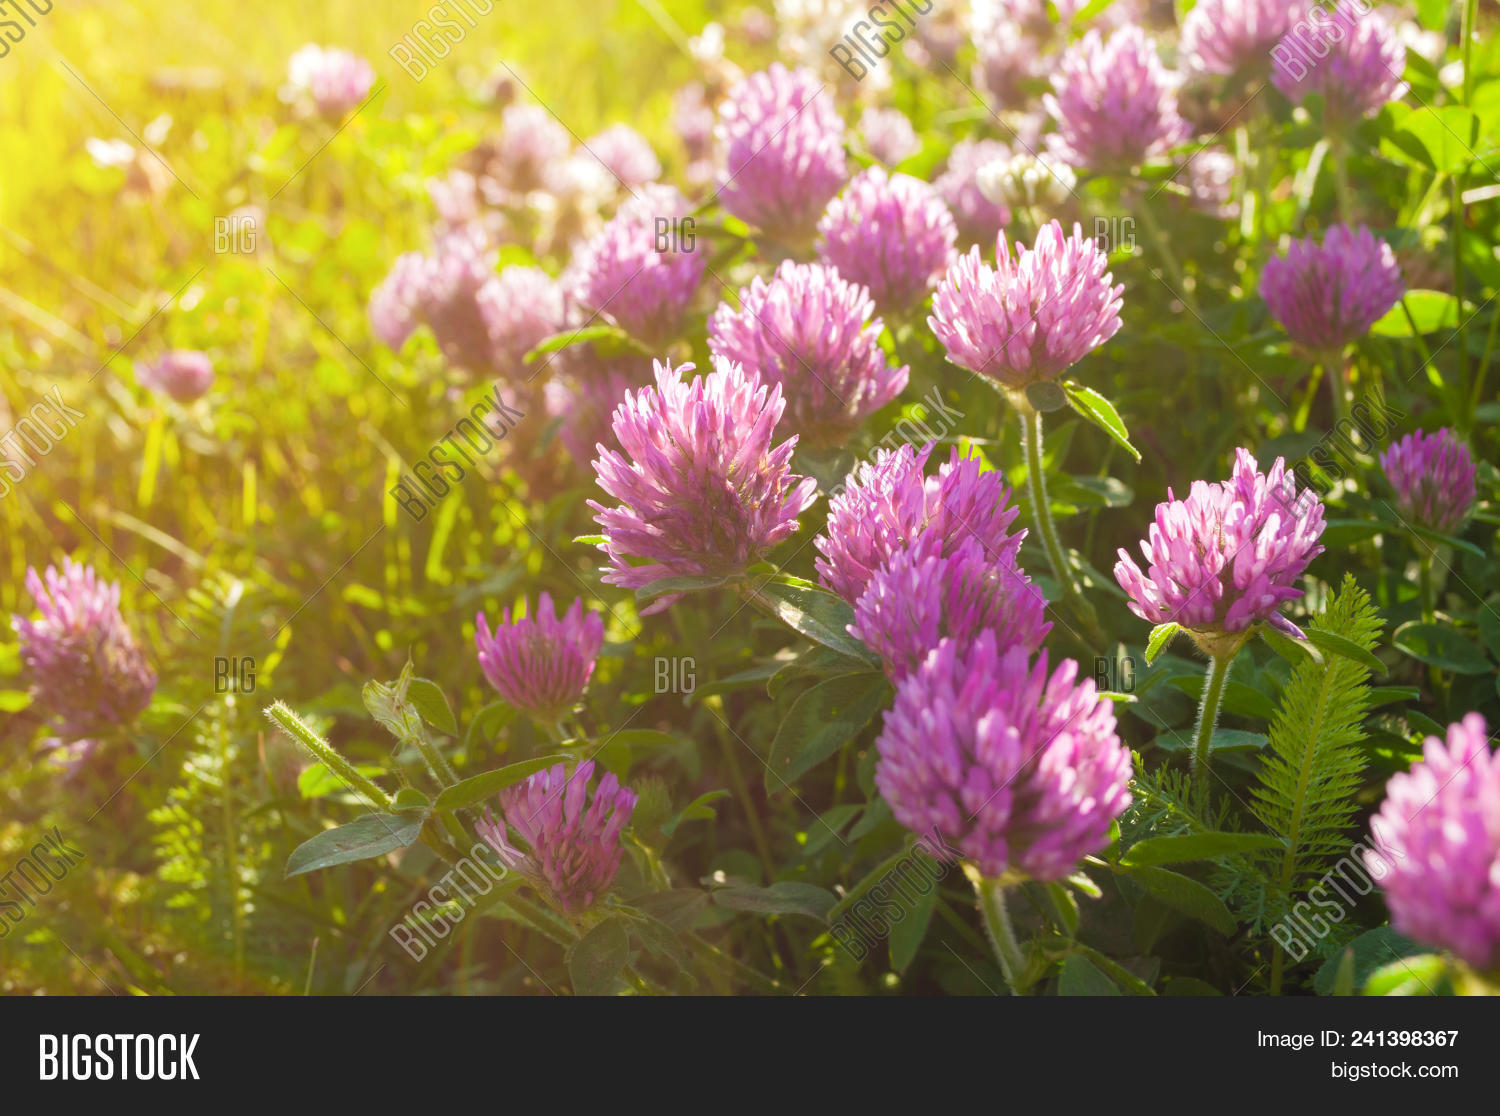 Pink Summer Flowers Image Photo Free Trial Bigstock